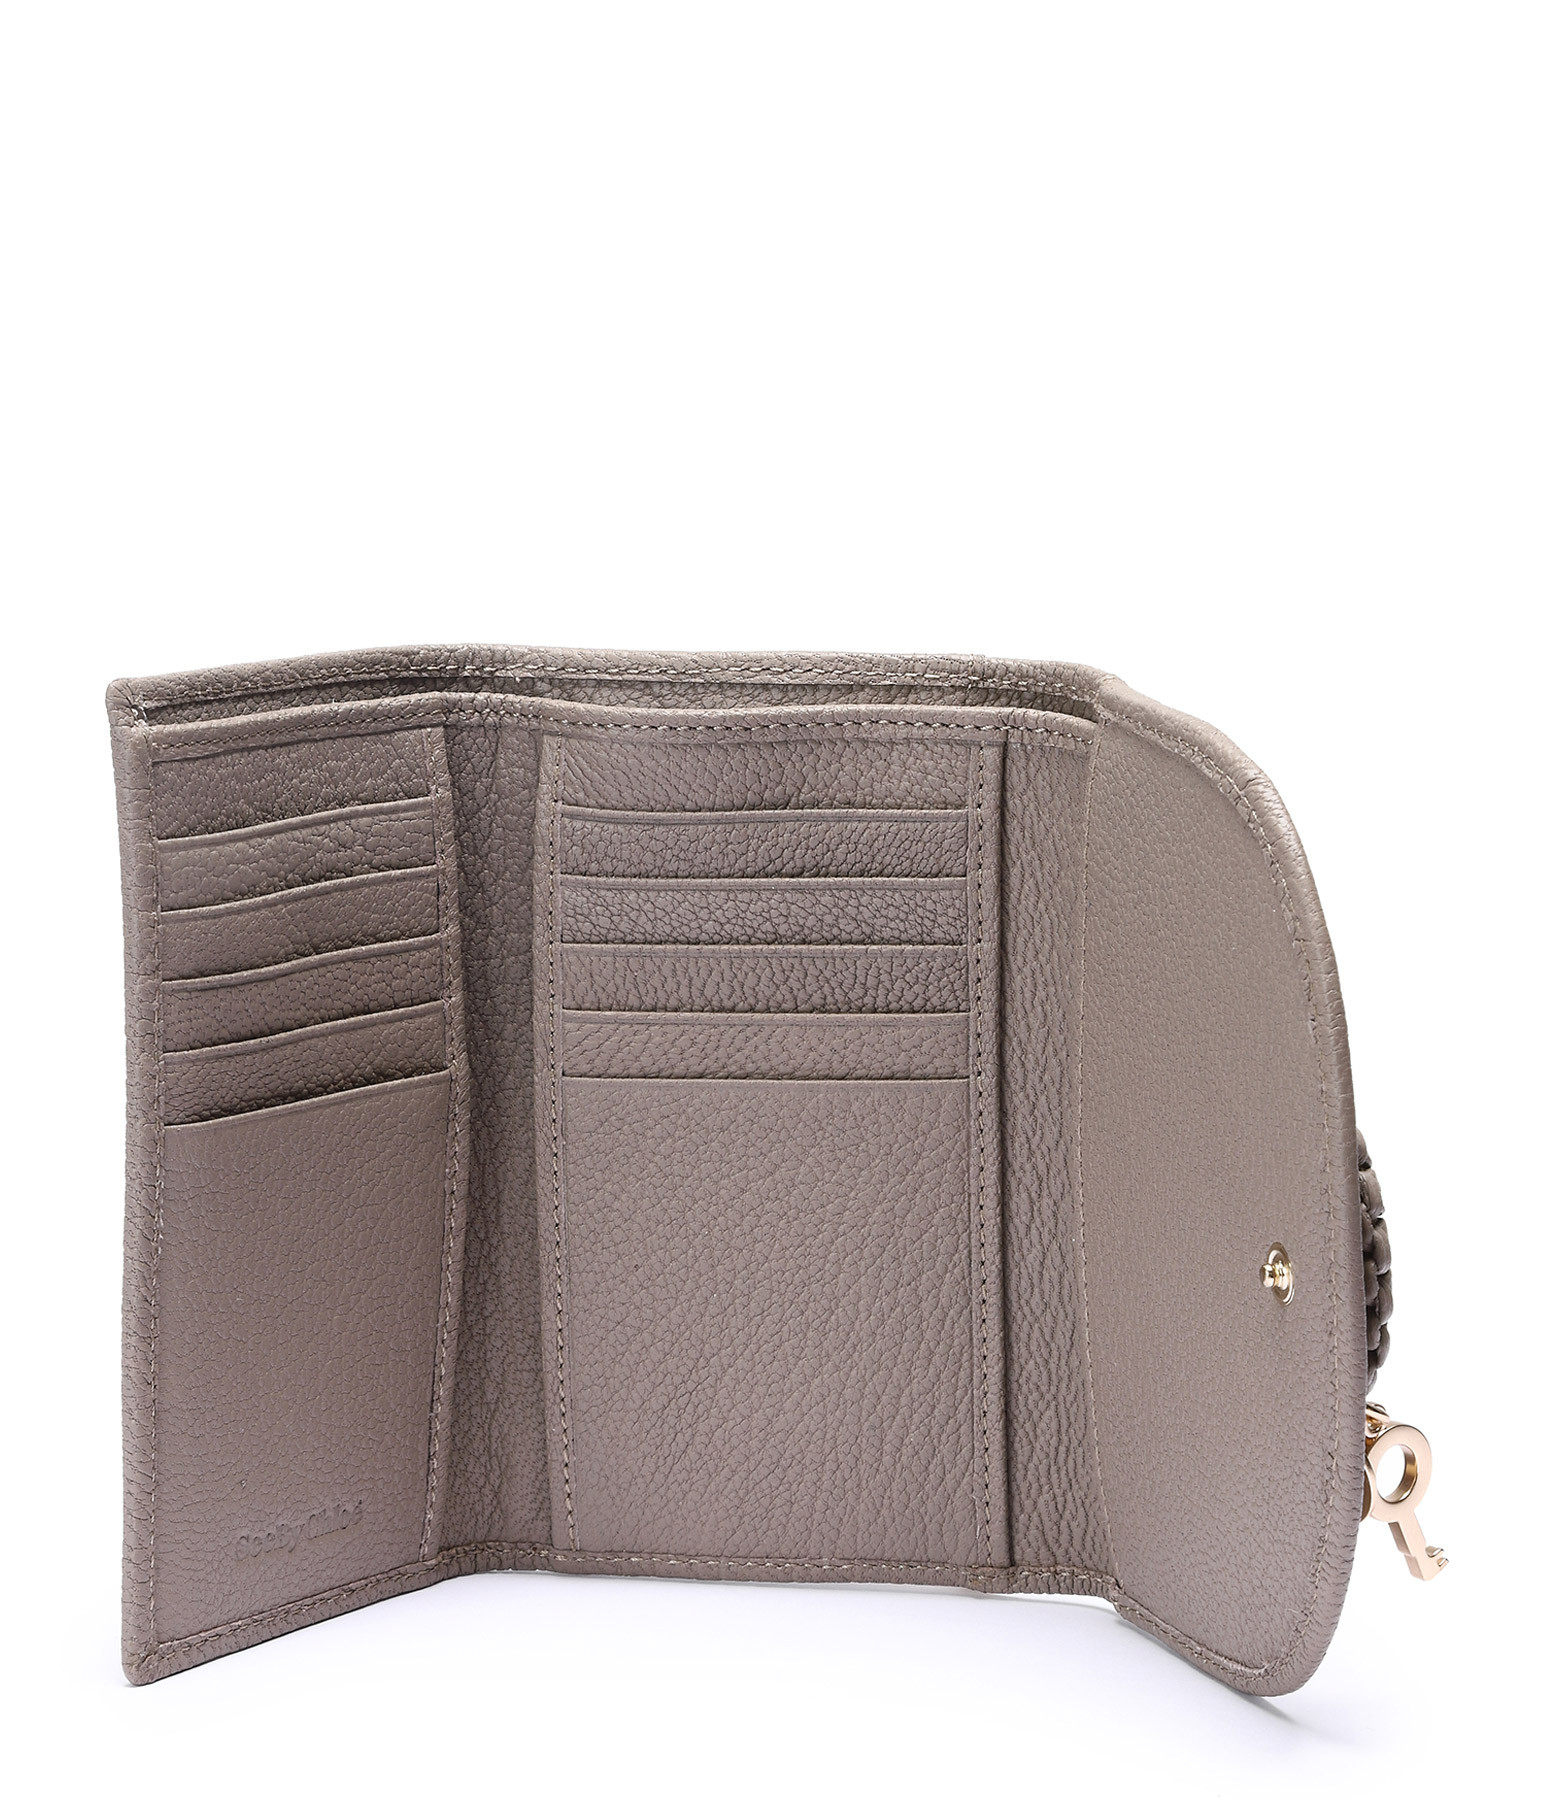 SEE BY CHLOE - Portefeuille Hana Compact Cuir Motty Grey